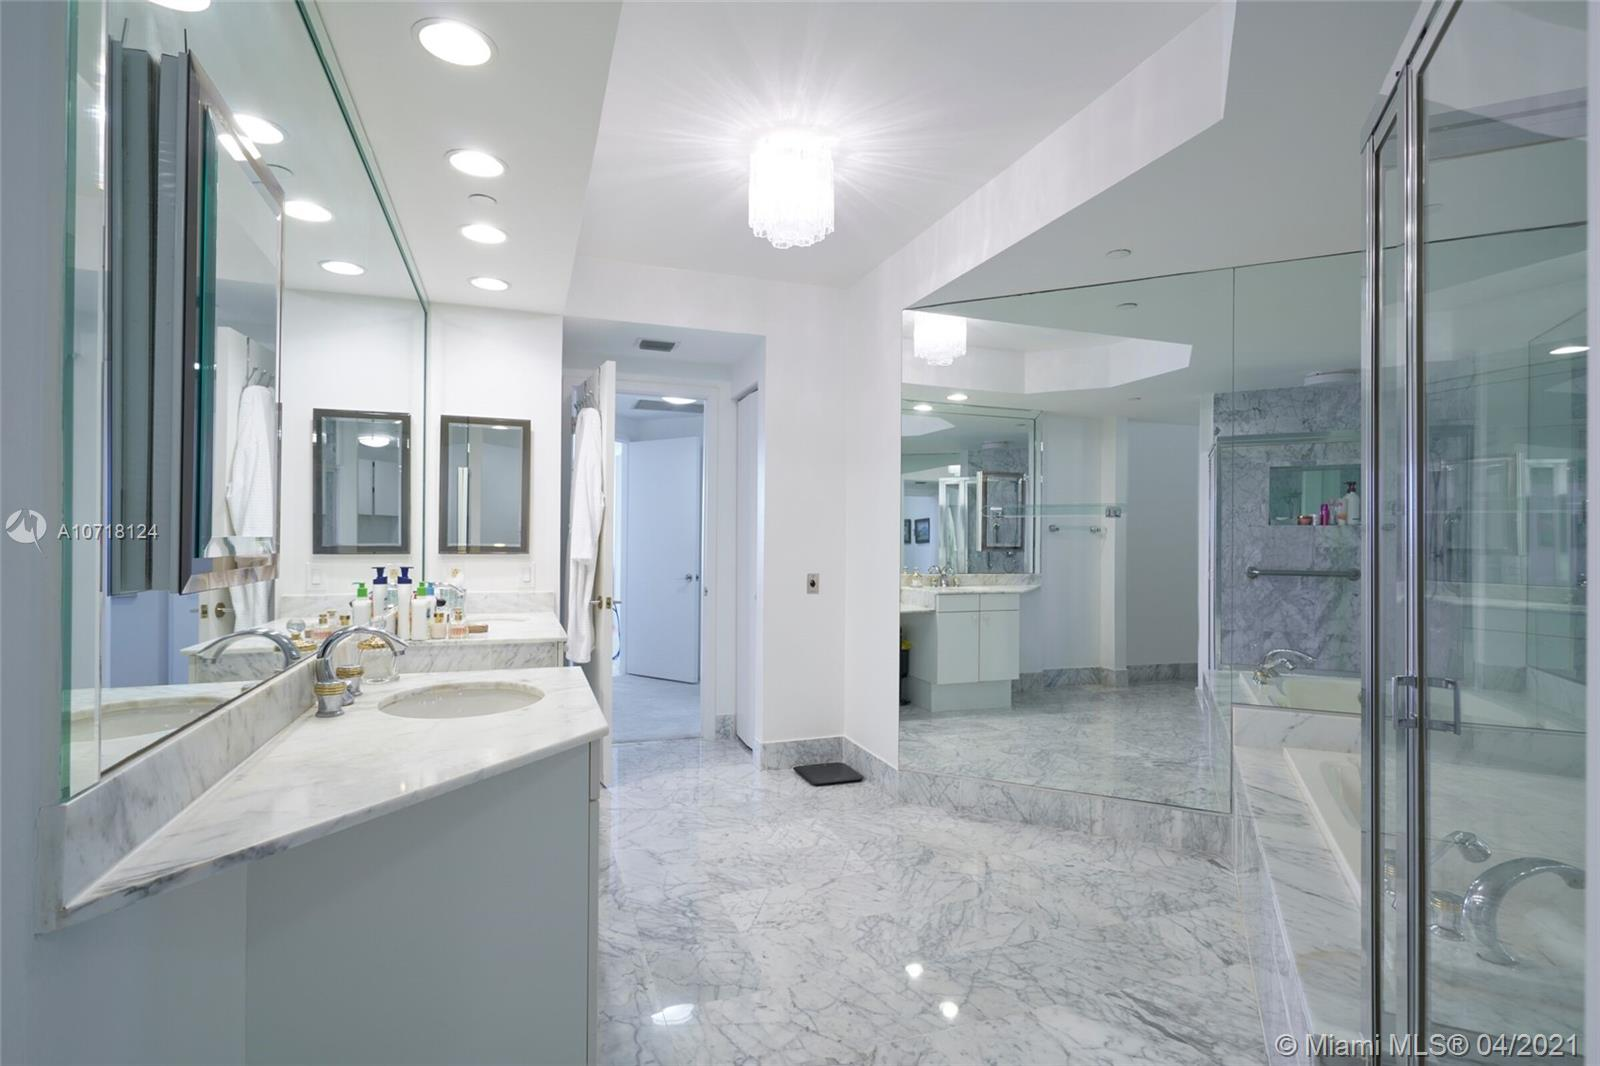 Photo of 3801 207 st #601, Aventura, Florida, 33180 -